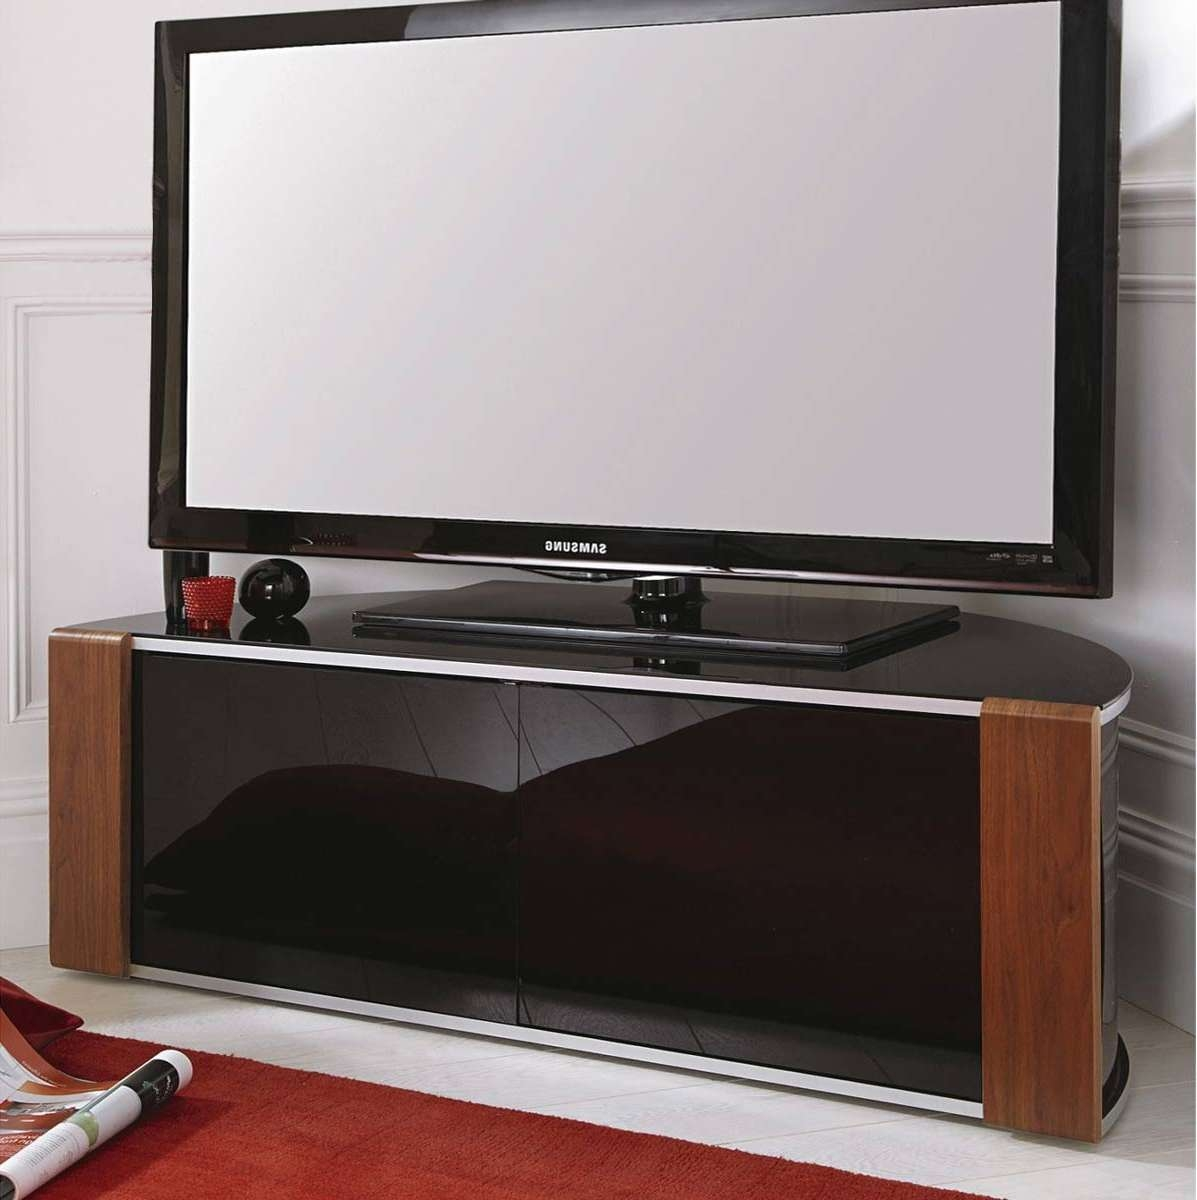 Tv : Stunning Dark Walnut Tv Stands Furniture Interior Wall With Regard To Dark Walnut Tv Stands (View 10 of 15)